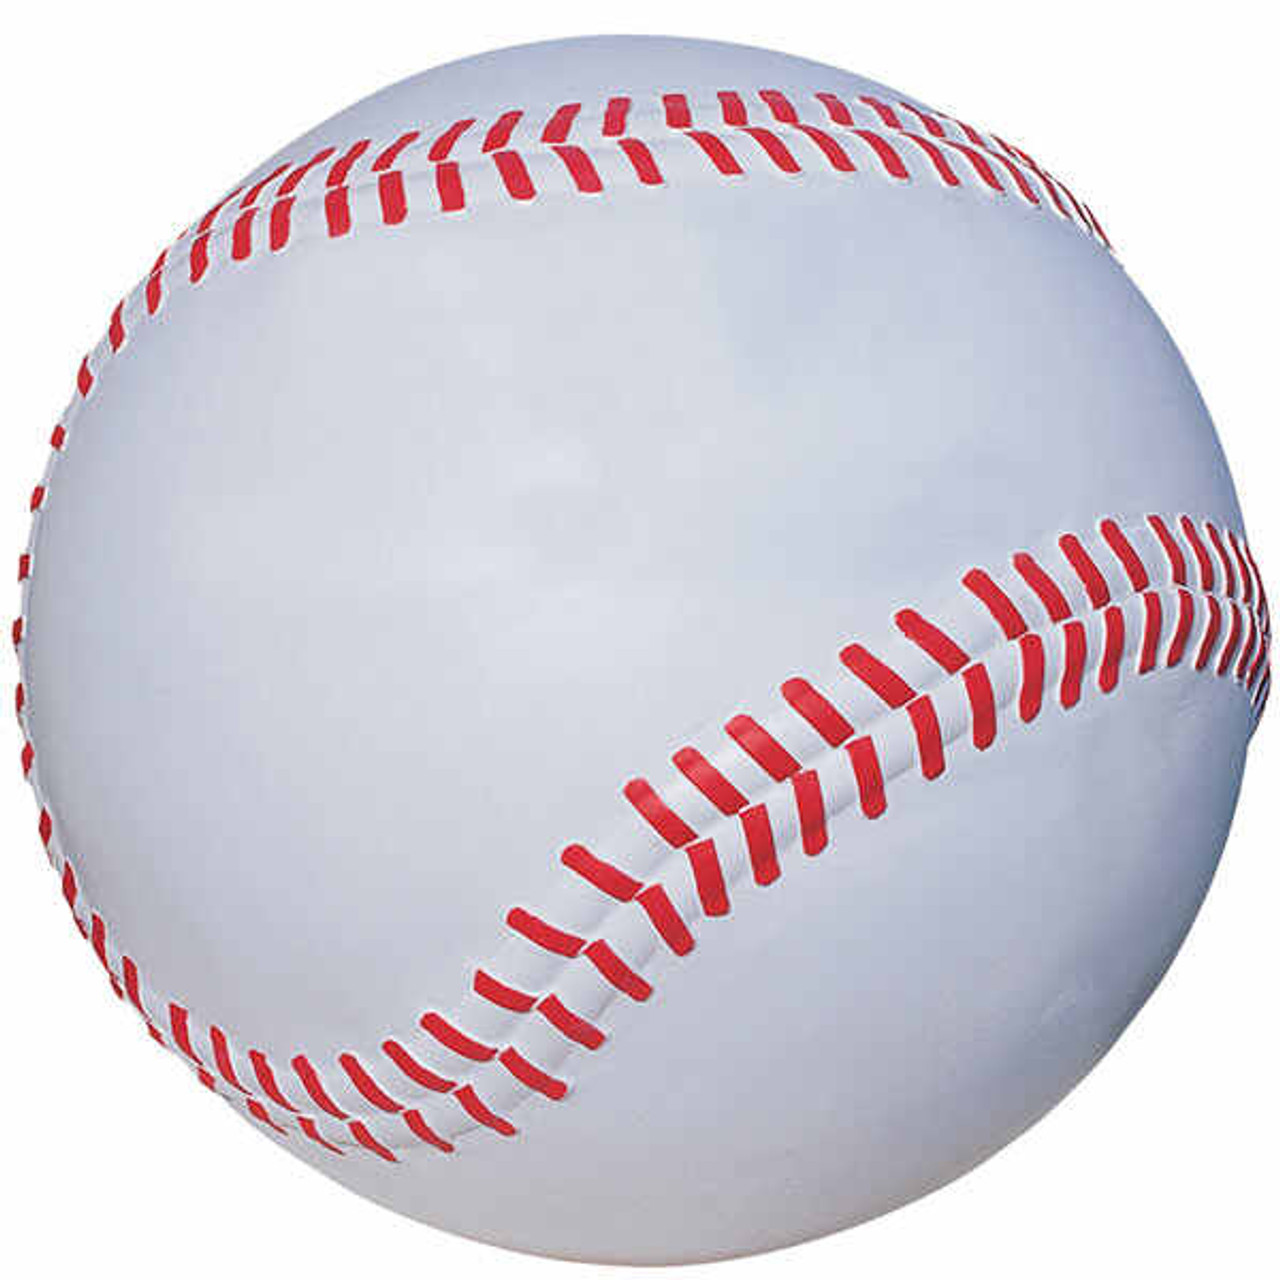 36 Inch Baseball Bollard Safety Barrier Sphere TF6204 Bright White and Bright Red